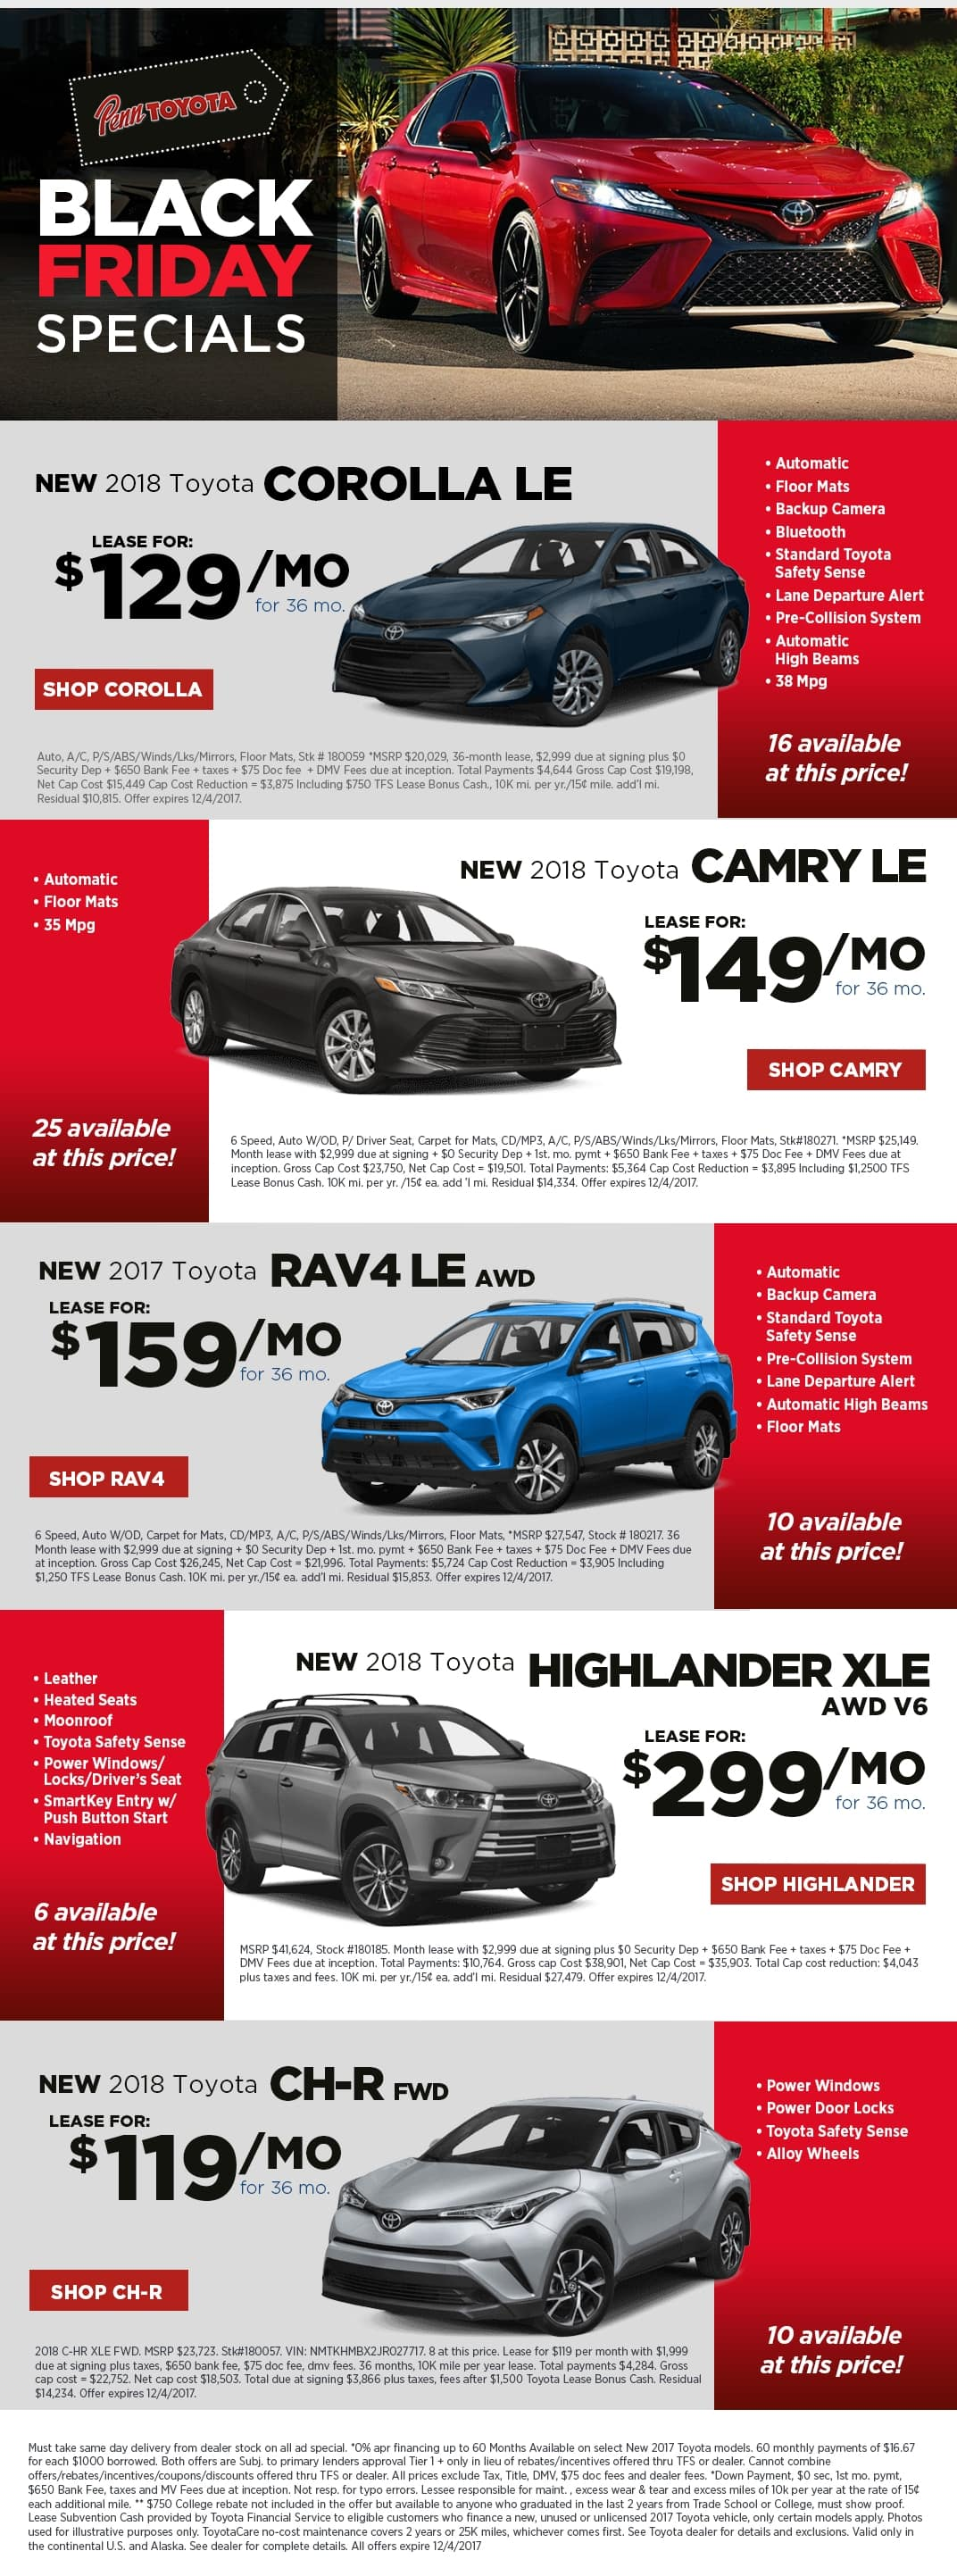 cvt toyota l deals camry leasecosts en canada a in cars lease automatic